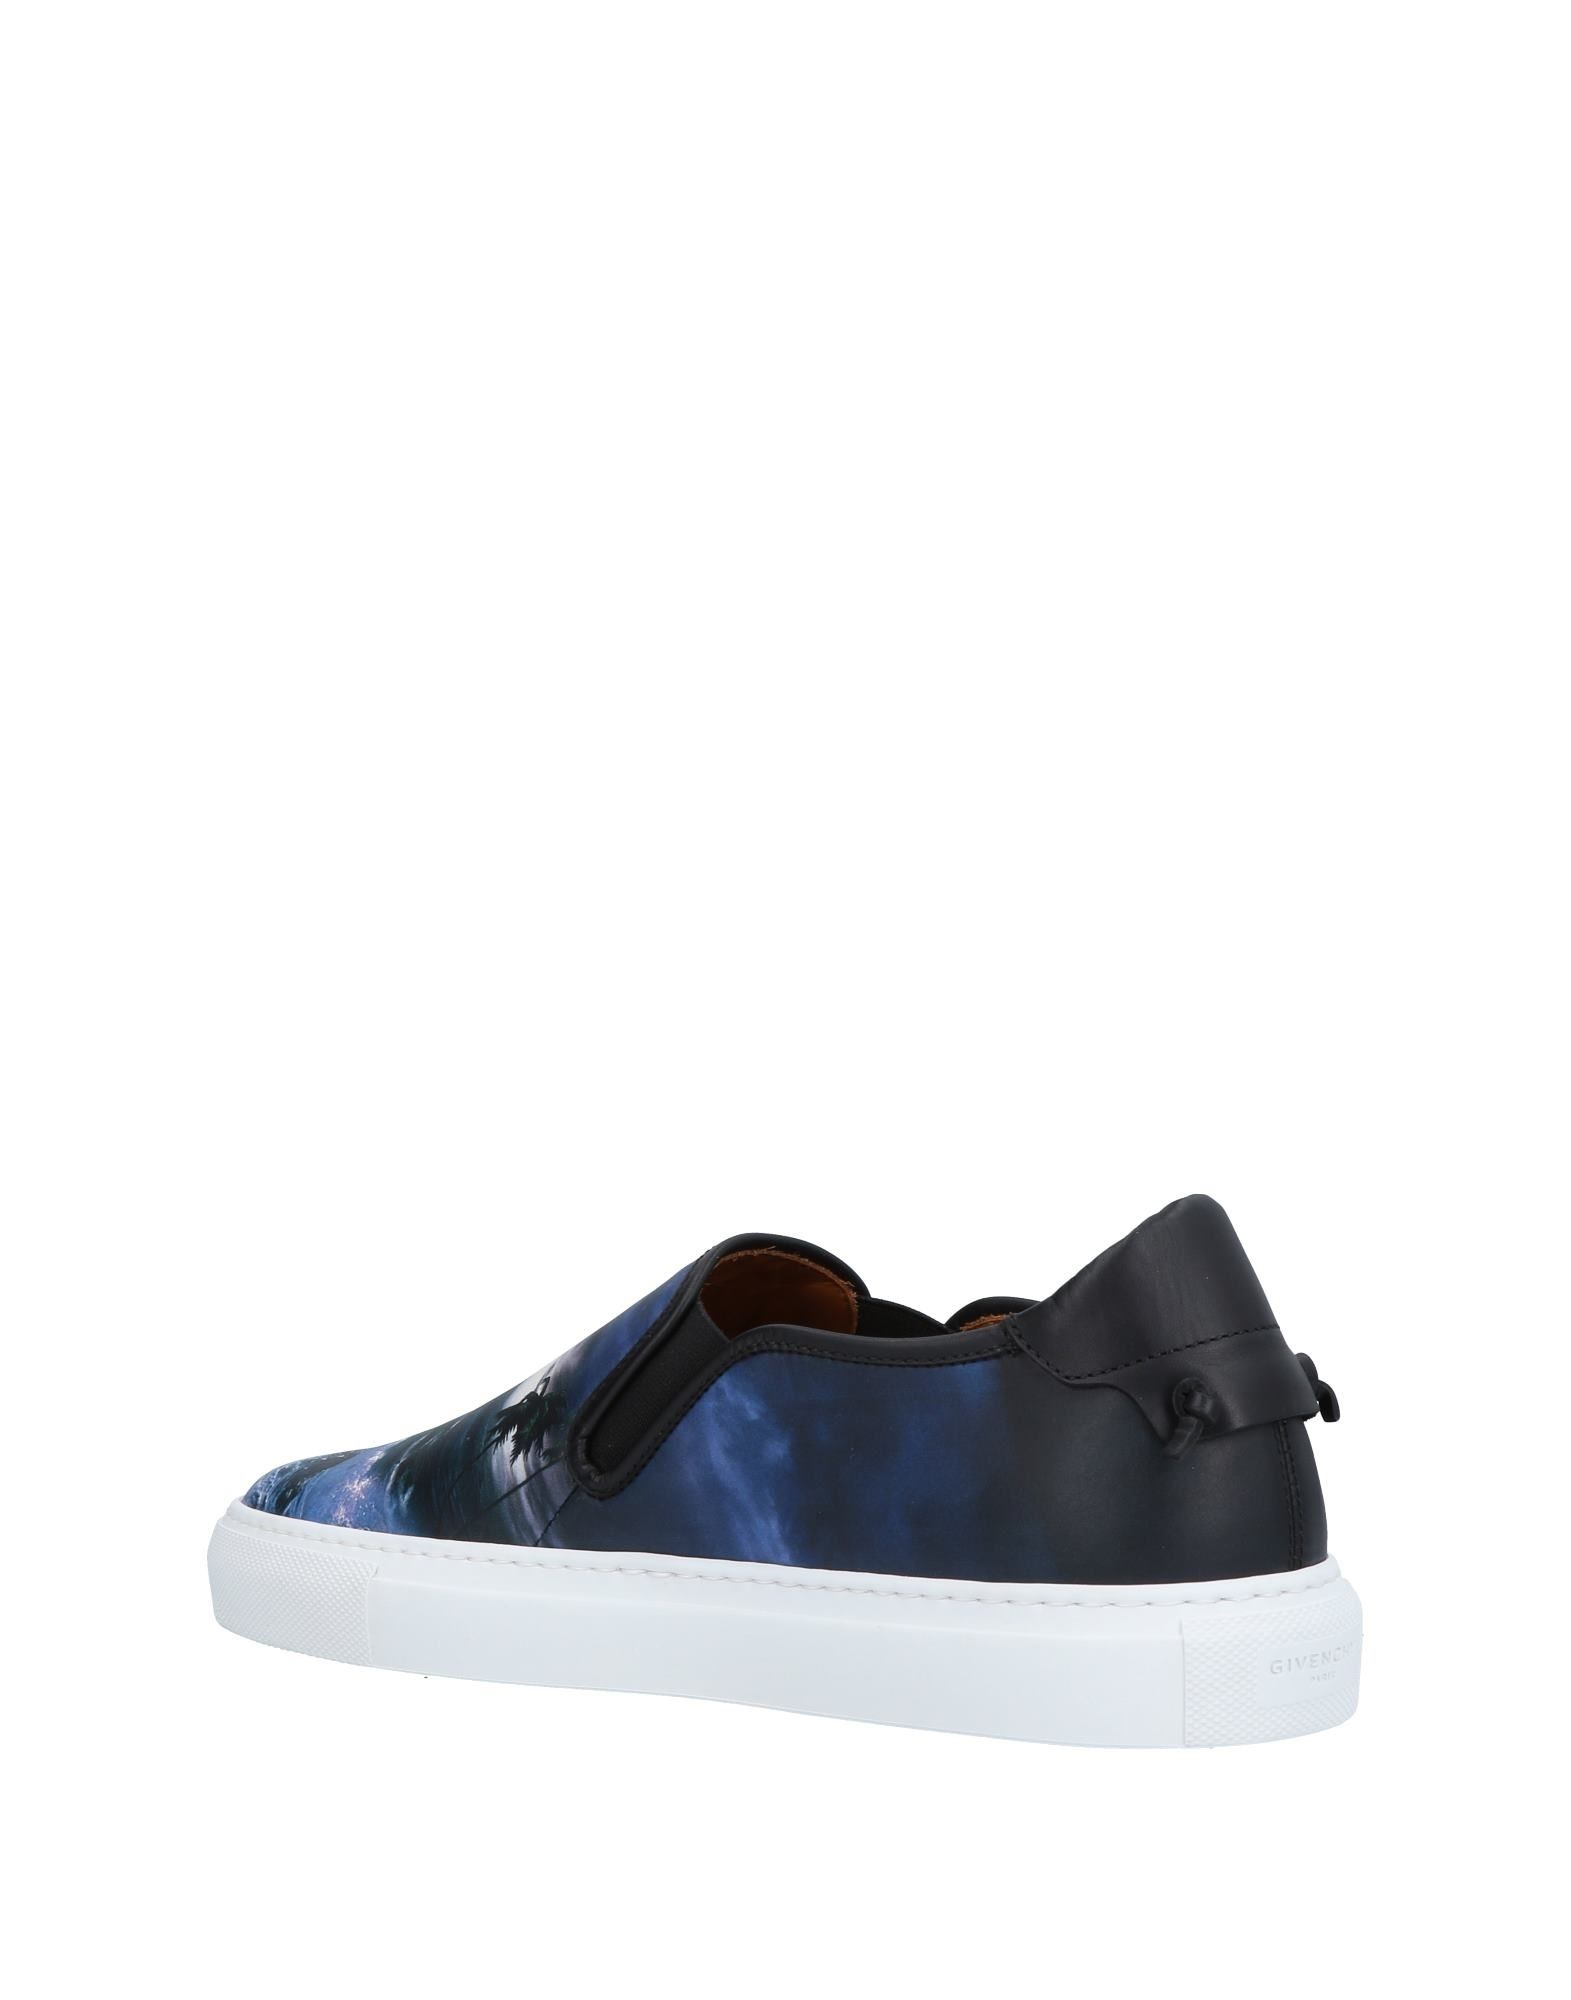 Givenchy Sneakers Sneakers Givenchy Herren  11465105HA 0ade4c